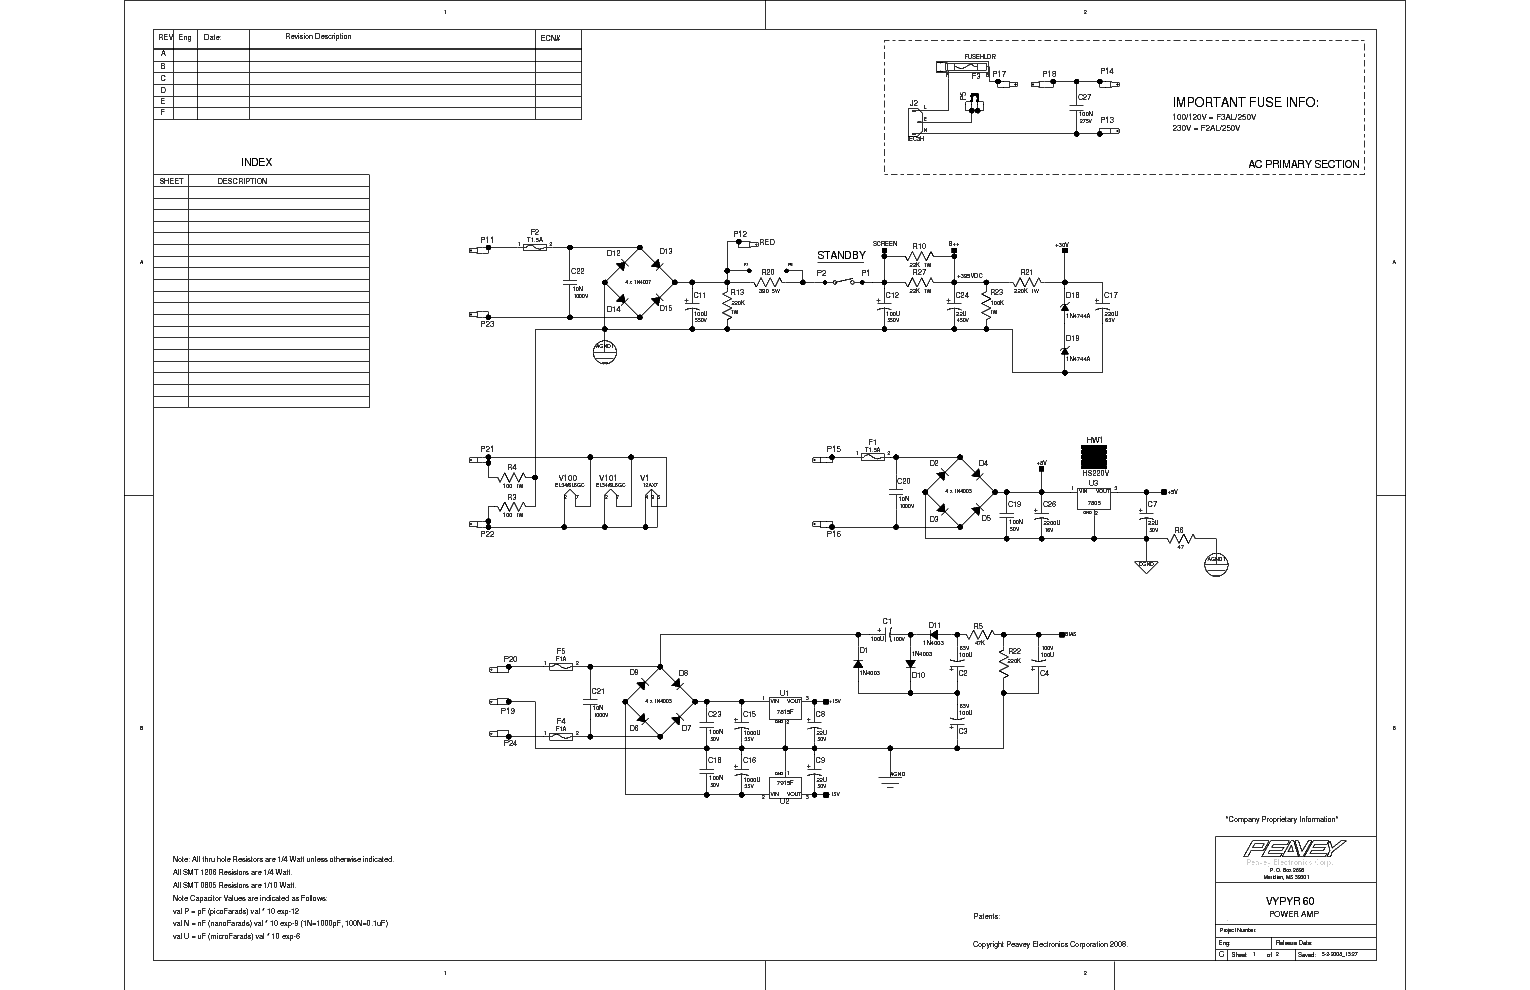 Monsoon   Wiring Diagram 2003 together with Diy Surround Sound Wiring in addition Nixie Tube Wiring in addition 2003 Hyundai Elantra Stereo Wiring Diagram together with 7 1 Surround Diagram Wiring. on lifier